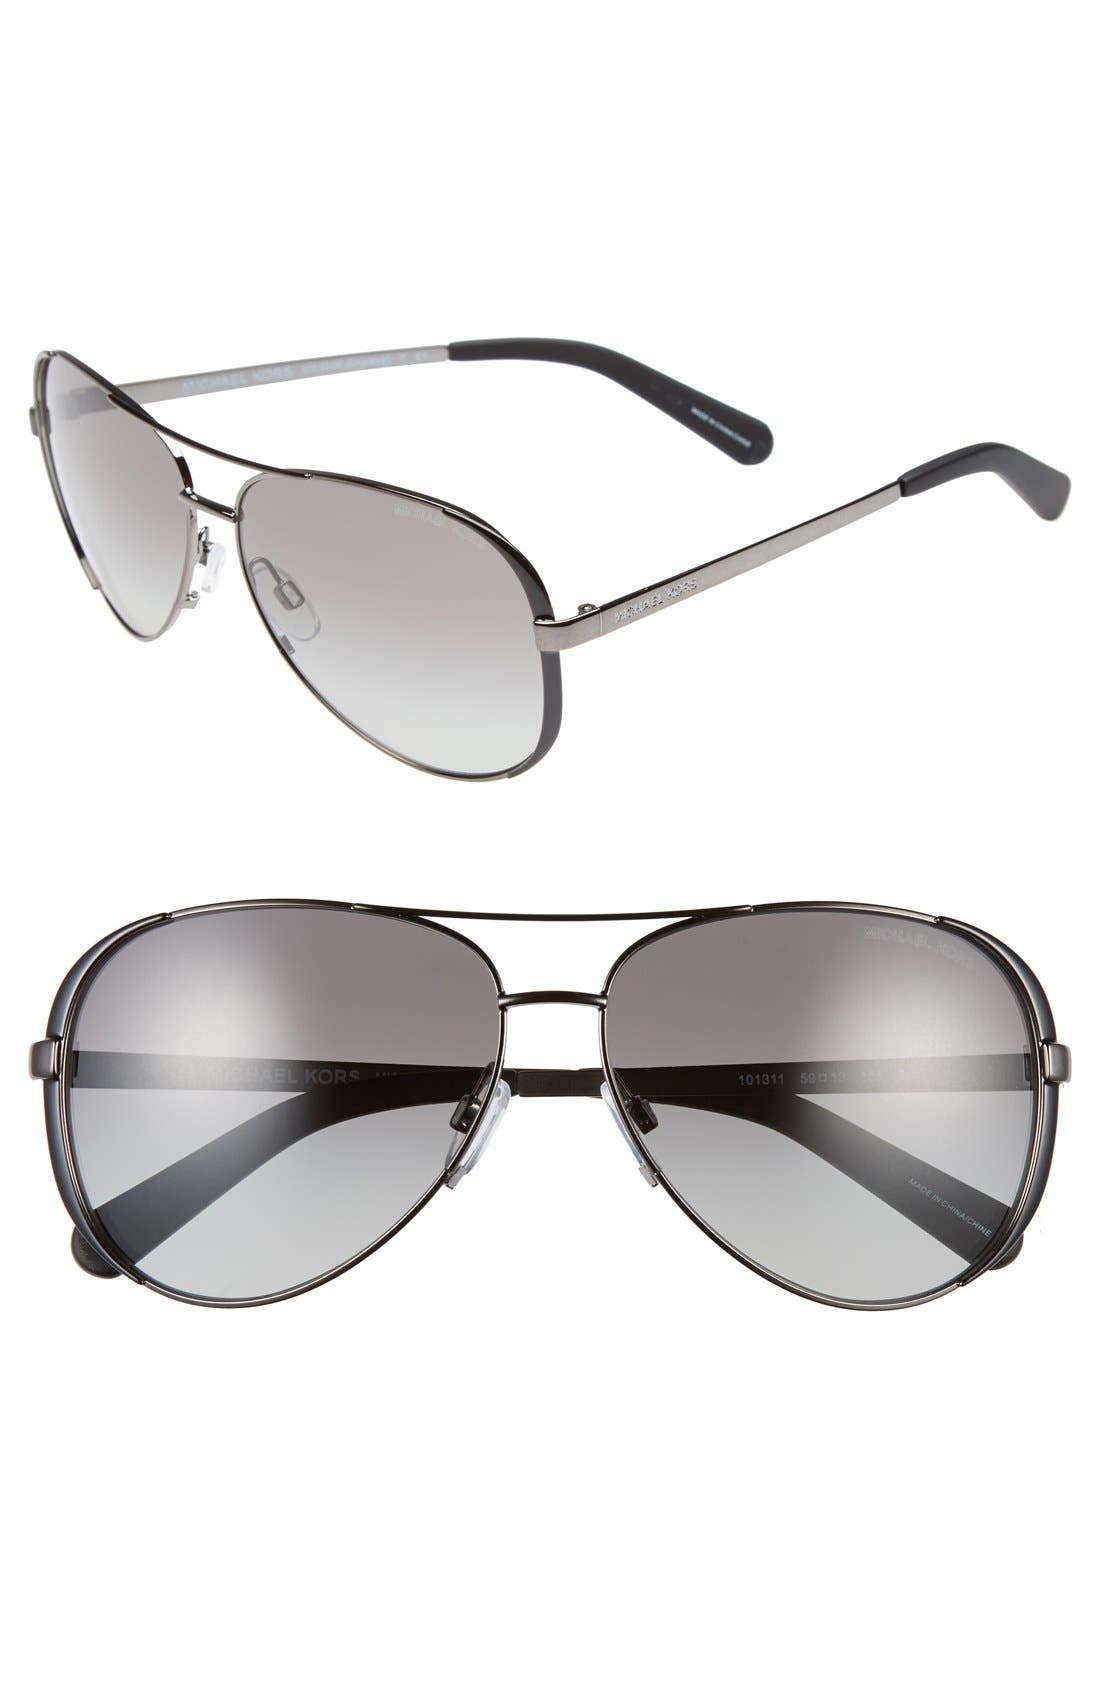 Collection 59mm Aviator Sunglasses,                             Main thumbnail 1, color,                             020